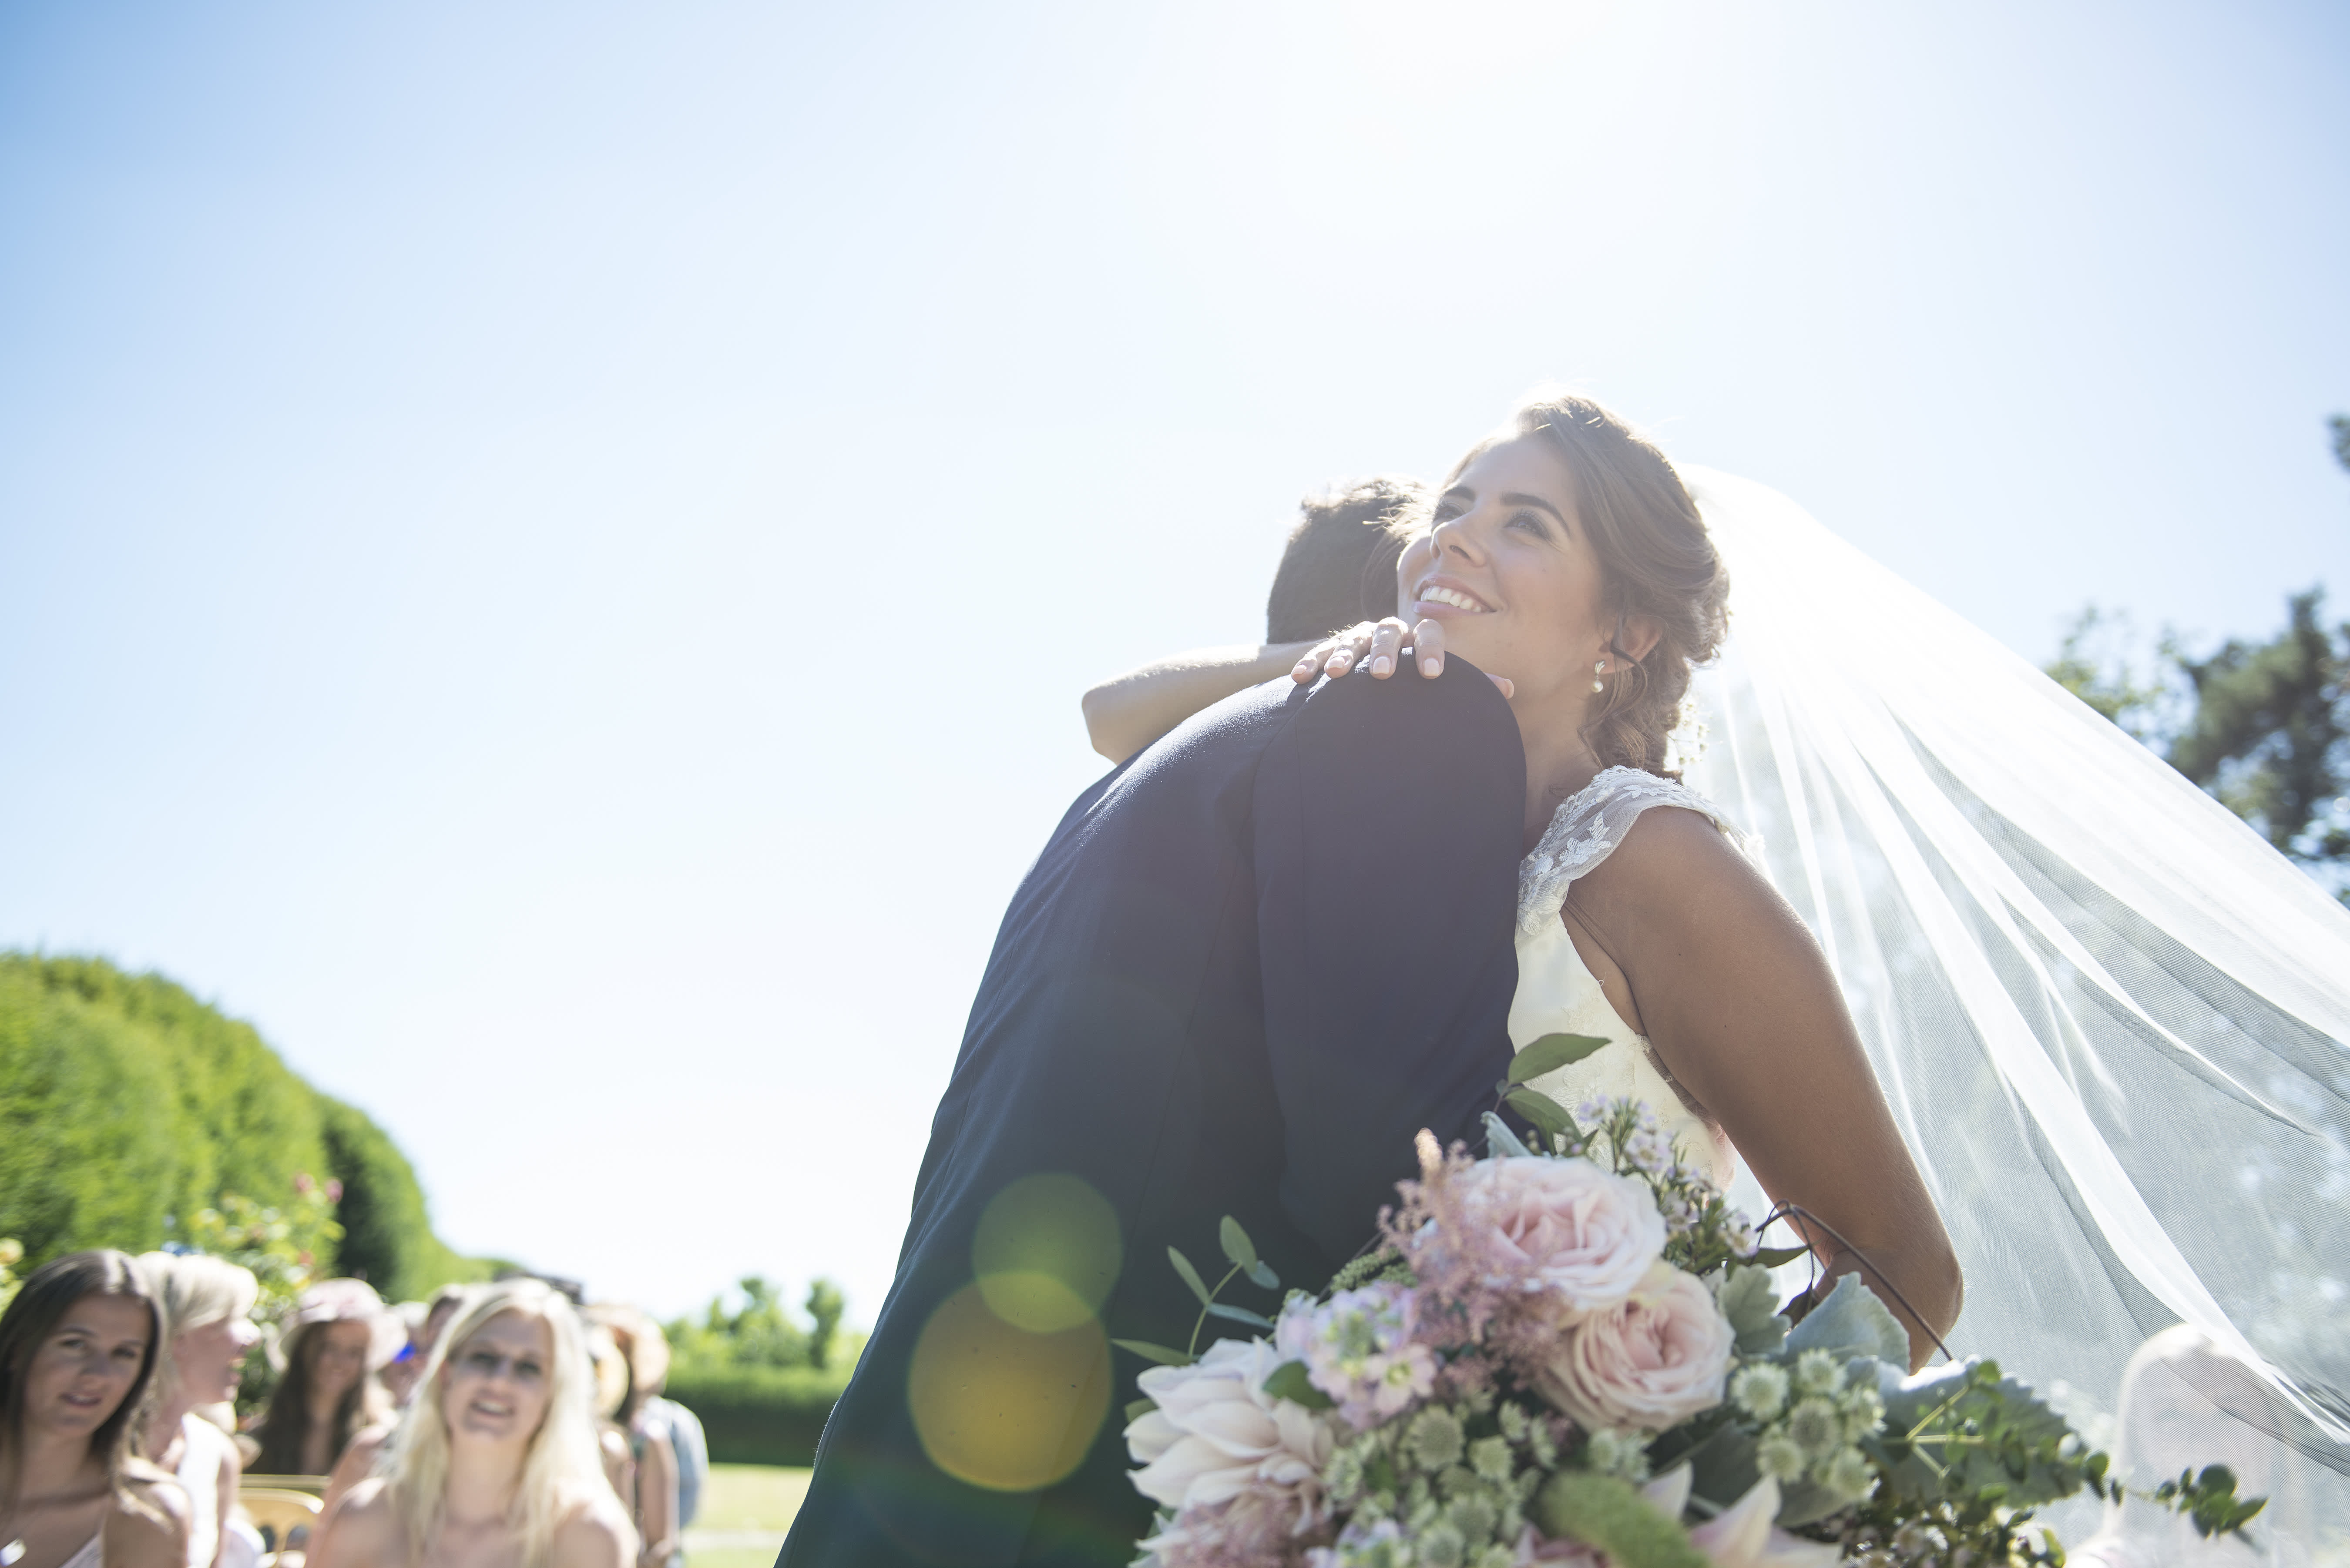 60% of Americans underestimate the cost of a wedding—here's how much 3 brides actually spent